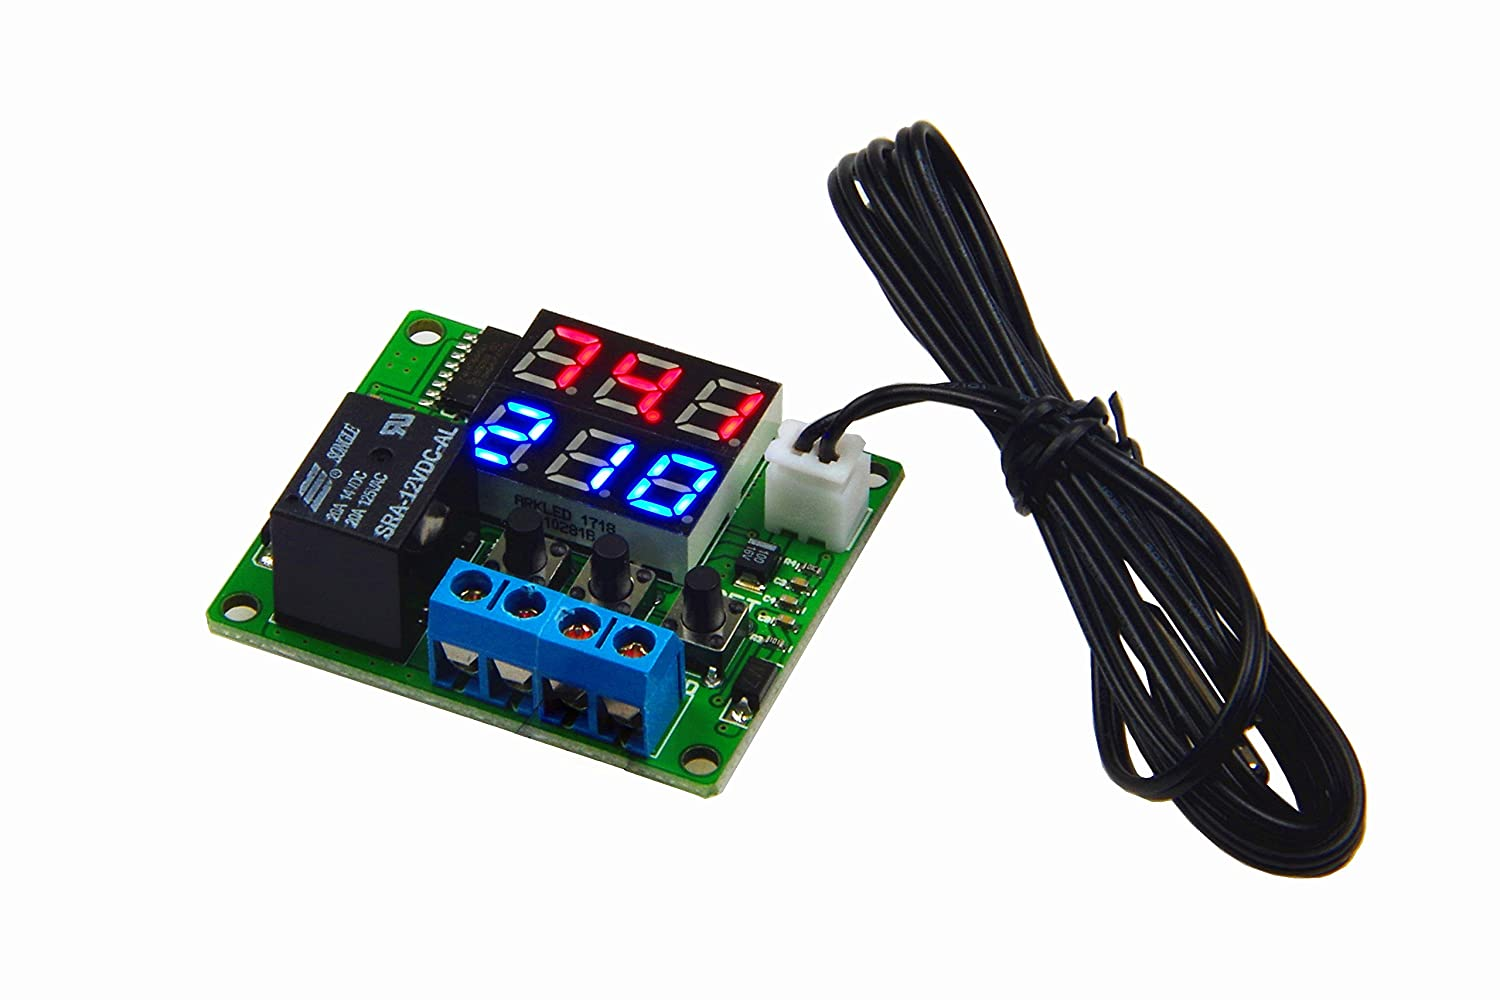 Lm Yn Dc 12v Digital Thermostat Module 4 To 212 Fahrenheit Temp Display Temperature Controller Board With 20a Relay Waterproof Sensor Probe Circuit Wiring Diagram